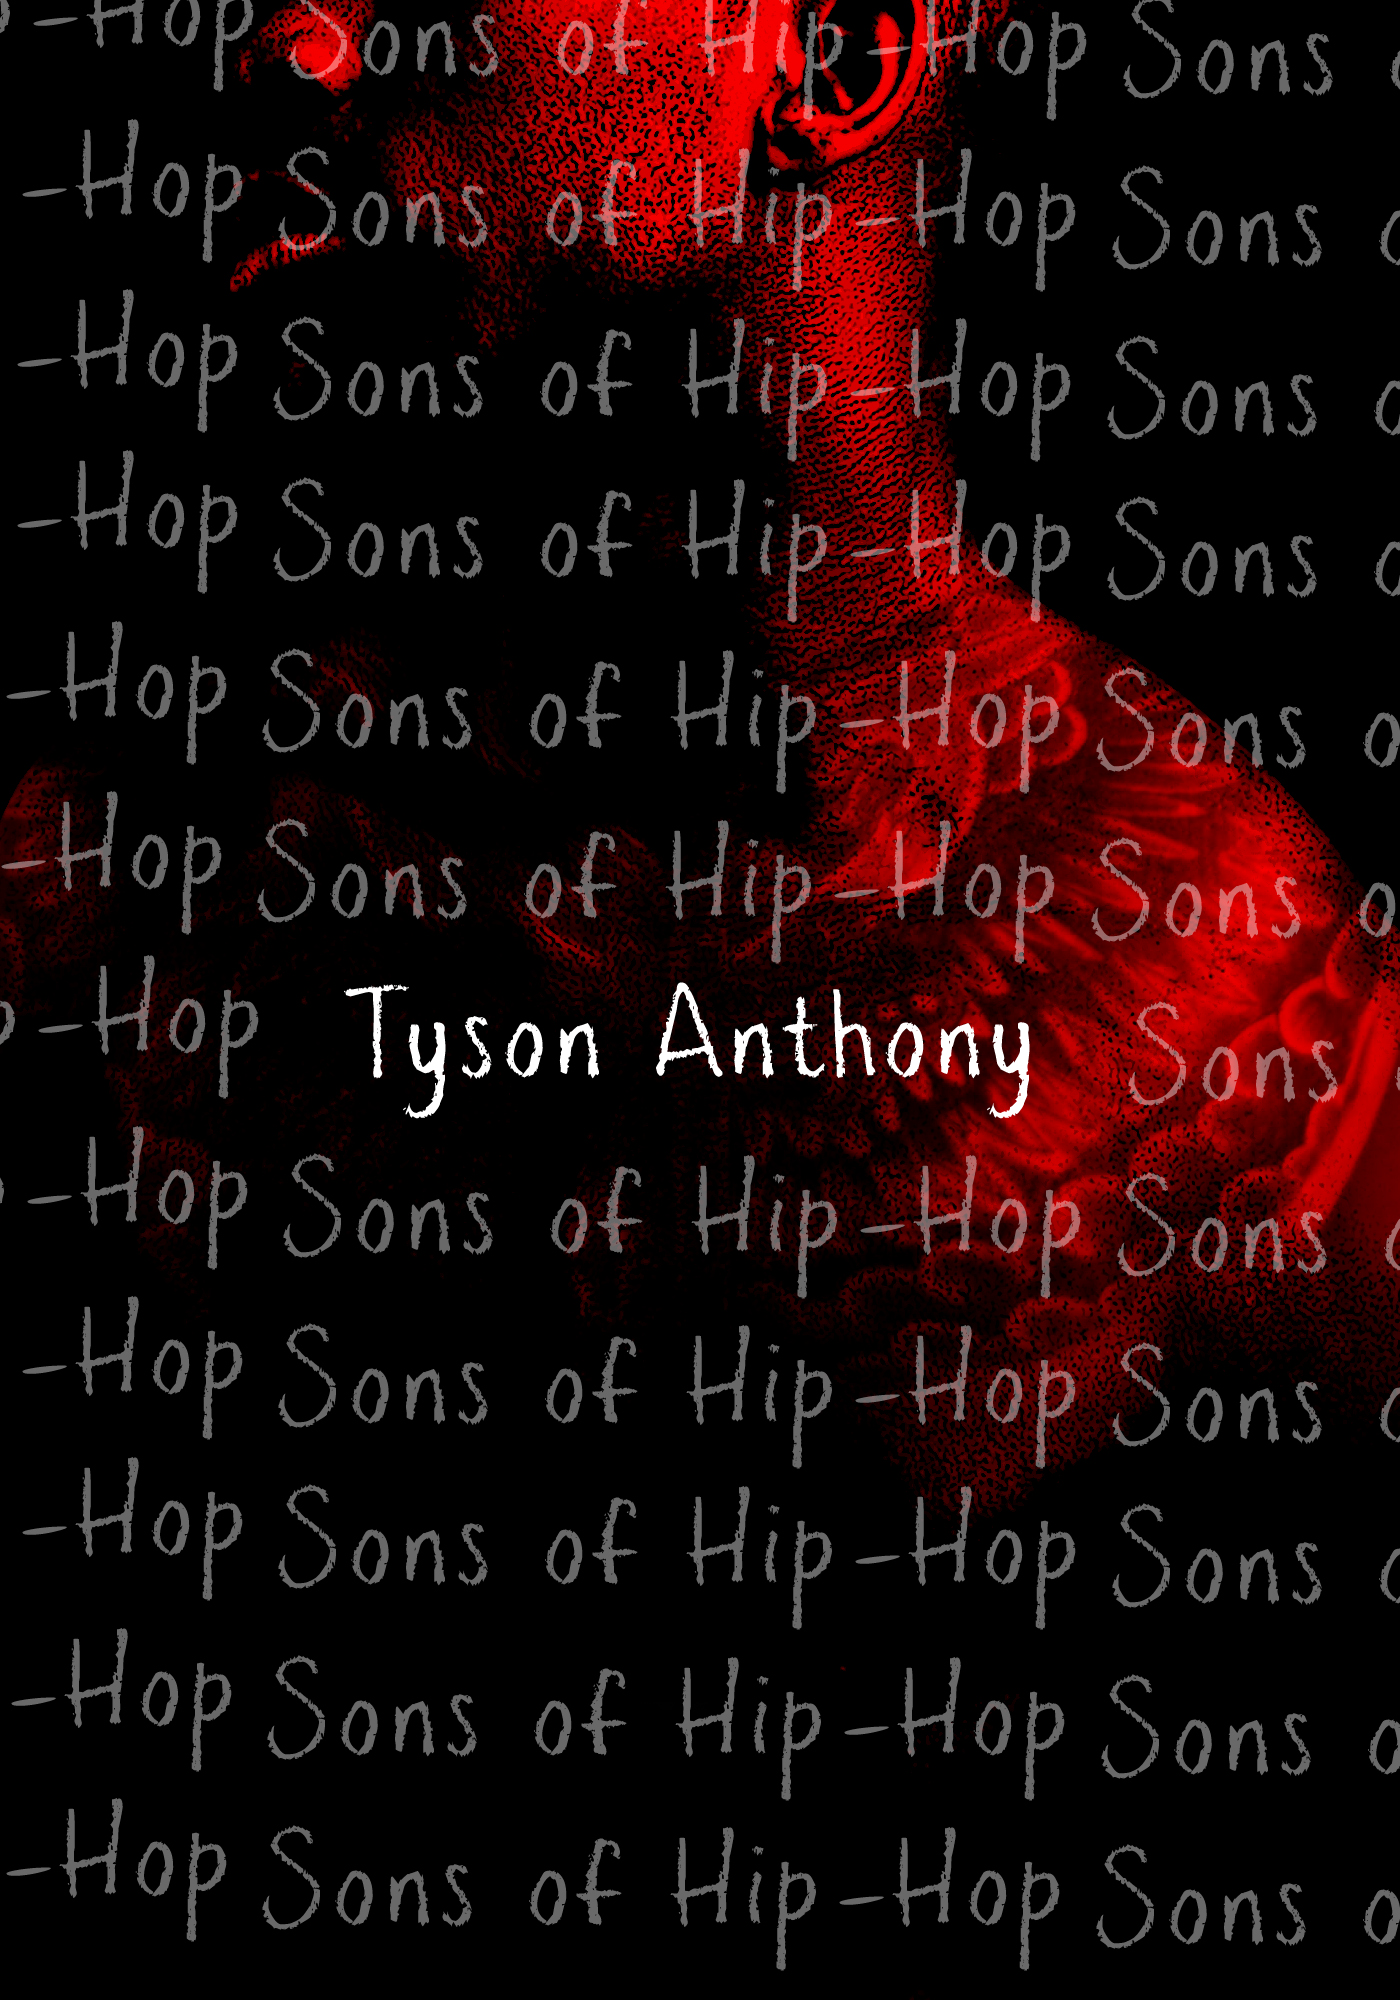 Sons of Hip-Hop